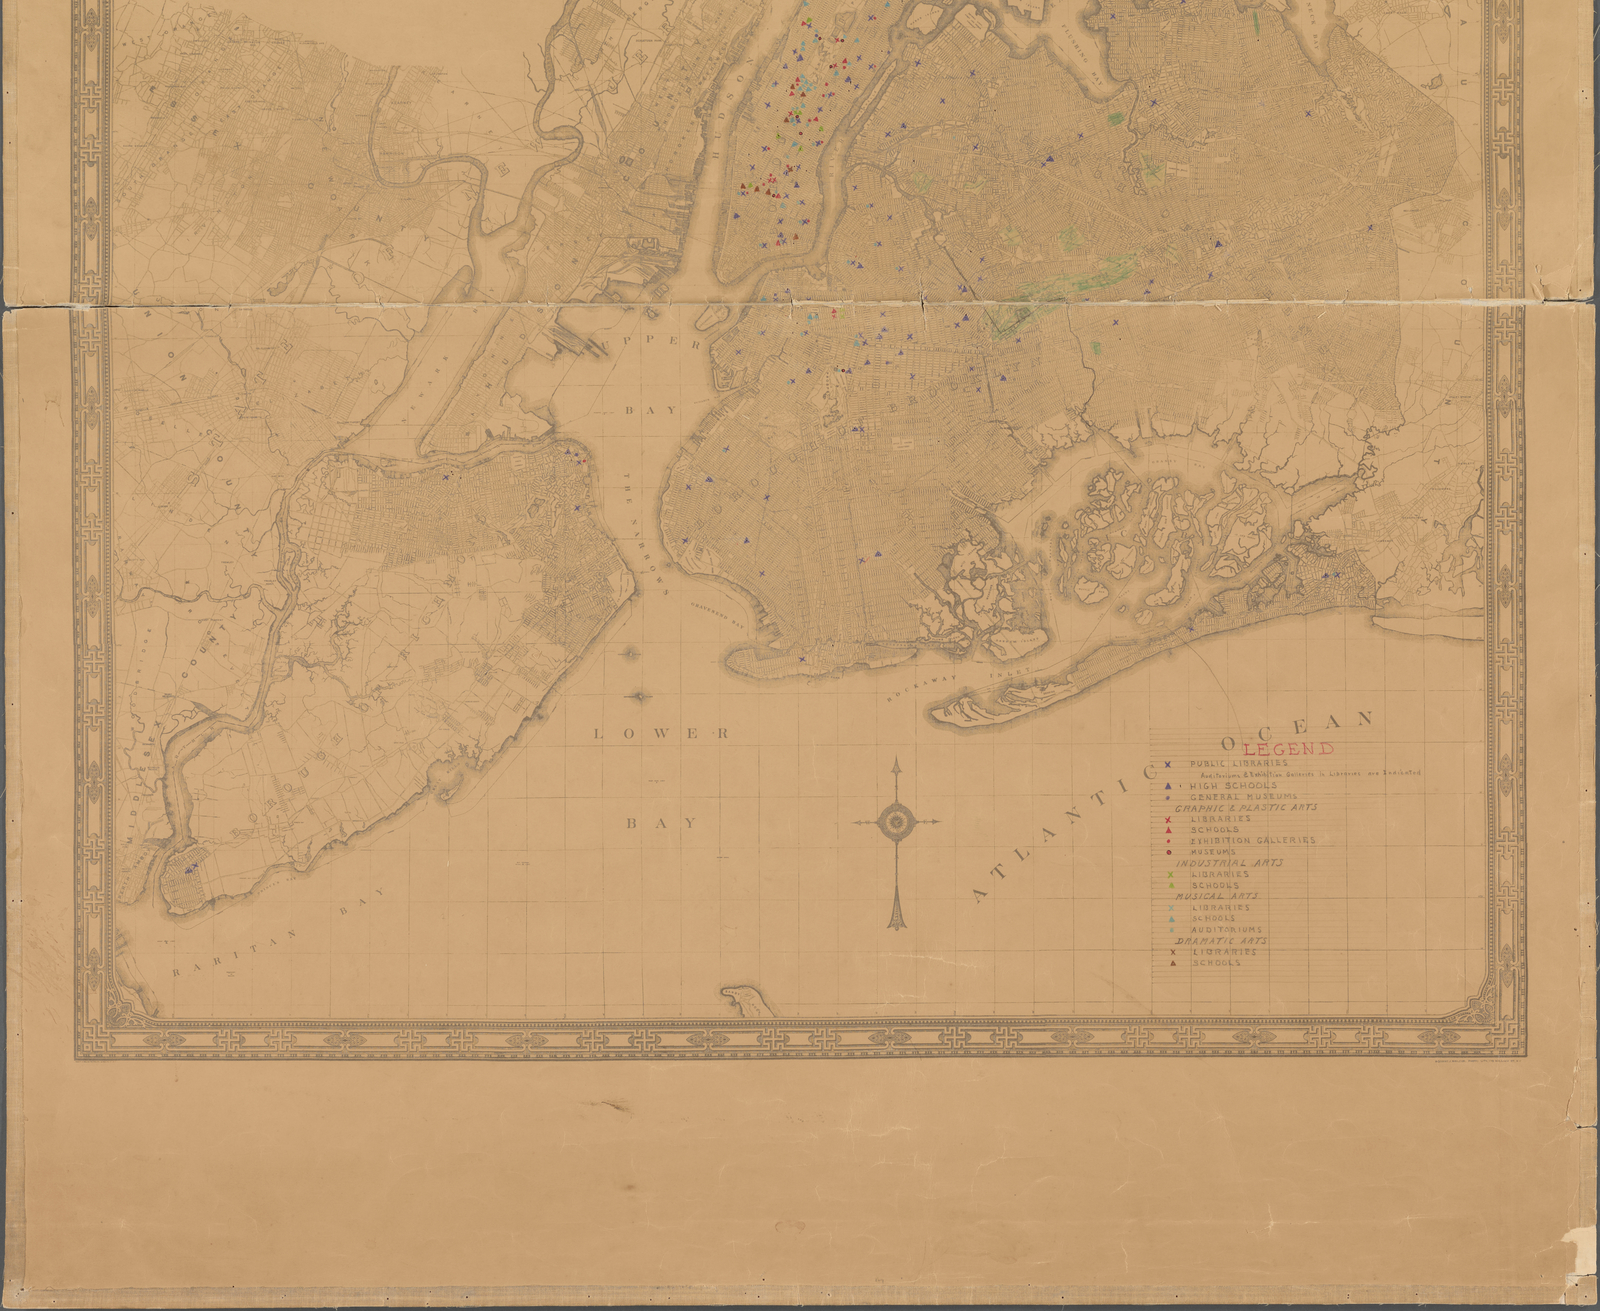 Map of the City of New York, compiled and prepared in conformity with the directions of the Board of Estimate and Apprtionment in the Office of the Chief Engineer. Shows schools, libraries, and museums